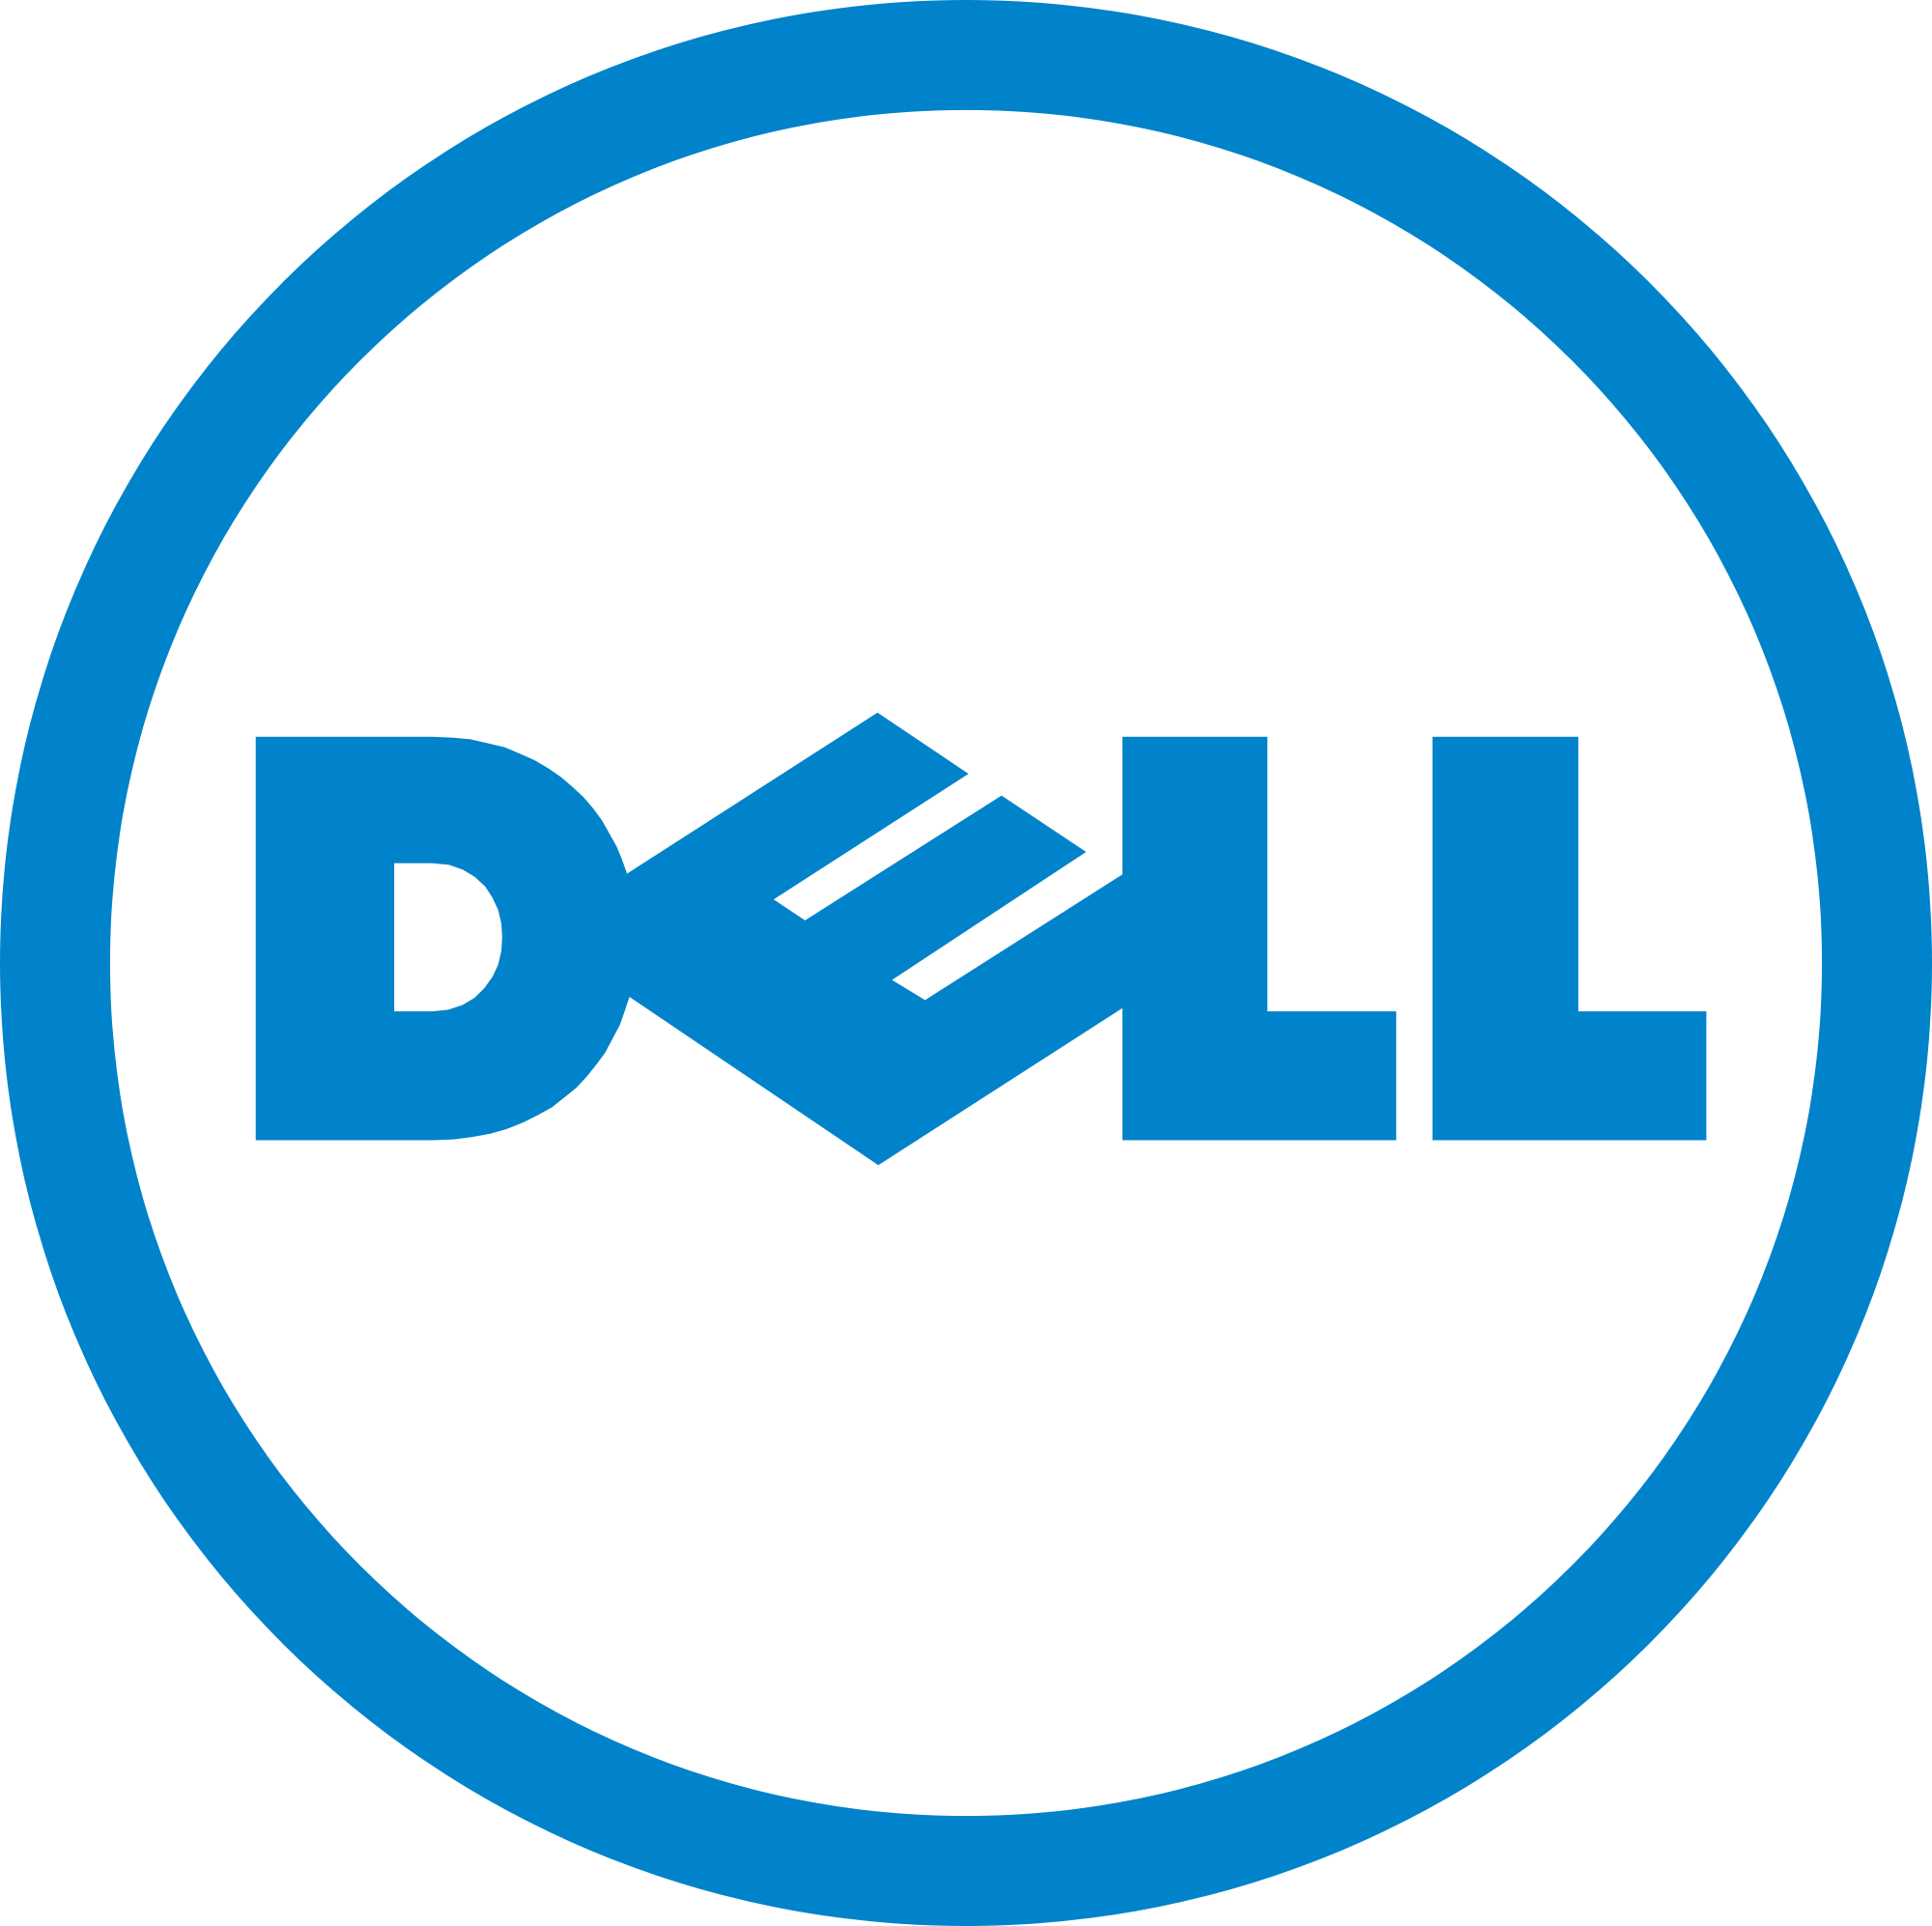 Dell SecureWorks: Inside the APT Threat